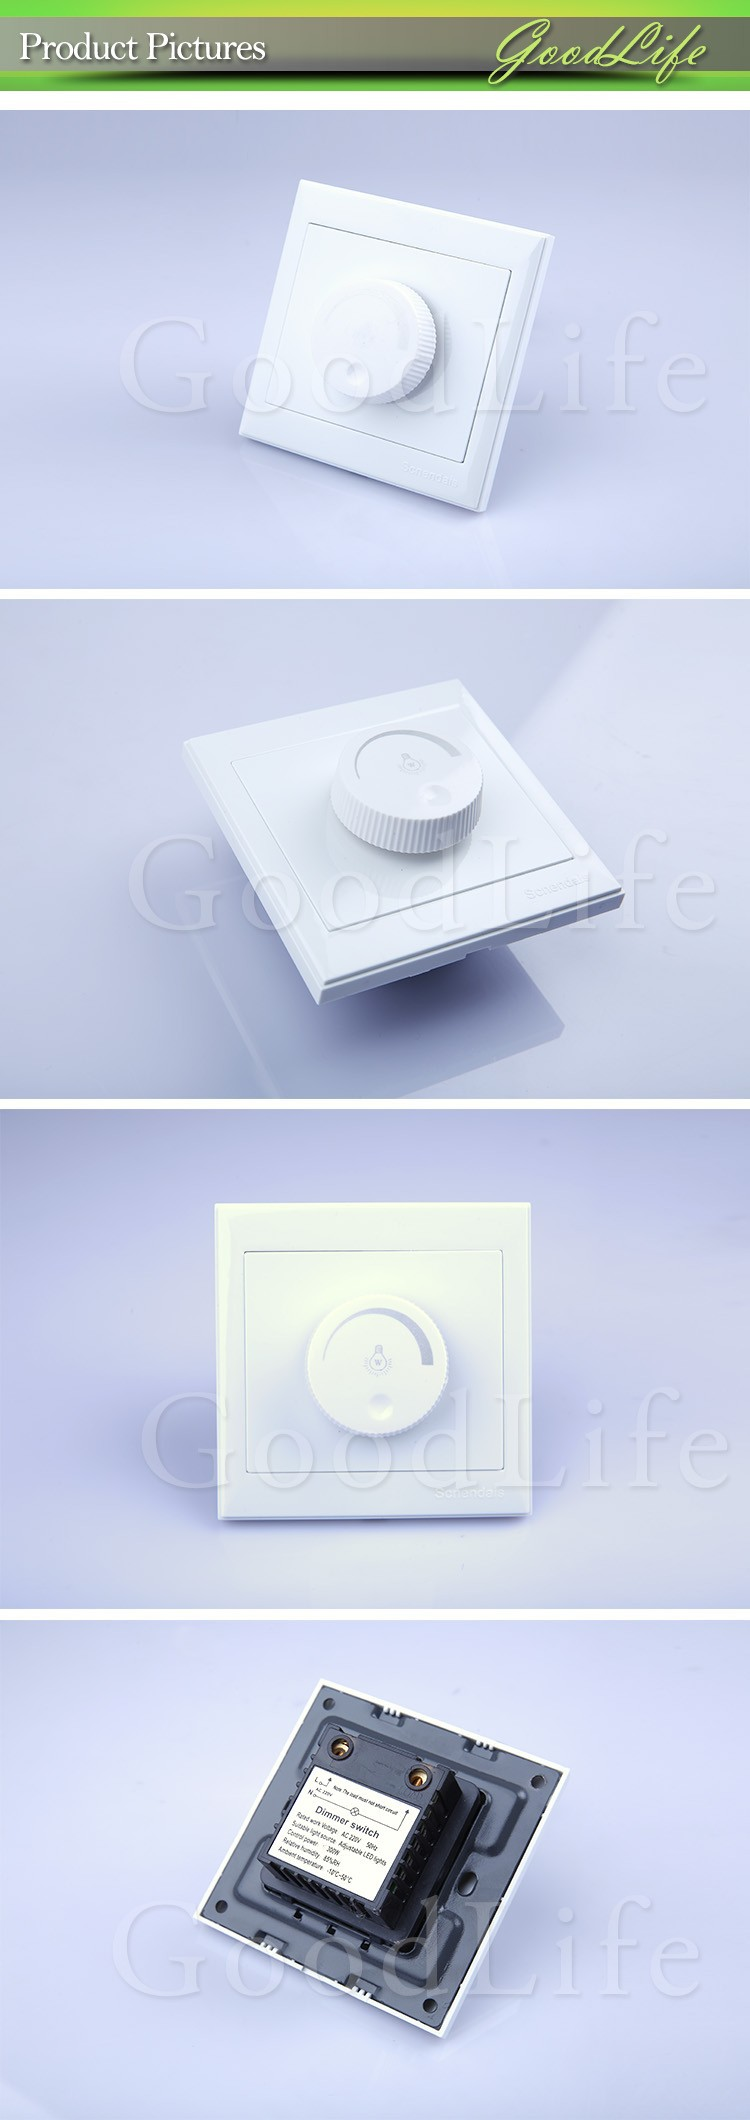 Led Scr Dimmer Switch 300w 220v Dimming Driver Brightness Ac